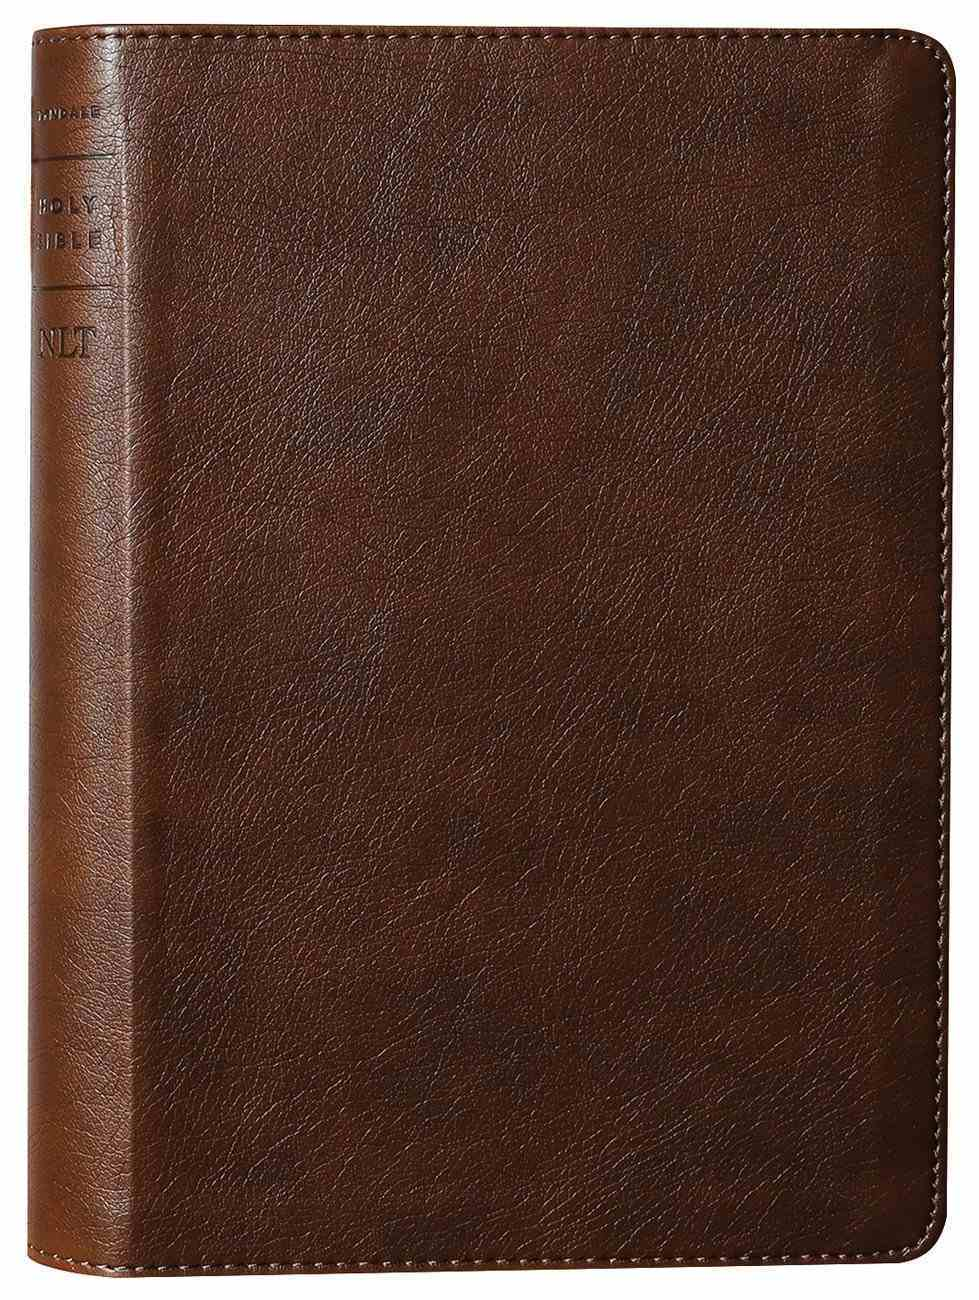 NLT Thinline Reference Bible Rustic Brown Red Letter (Filament Enabled Edition) Imitation Leather